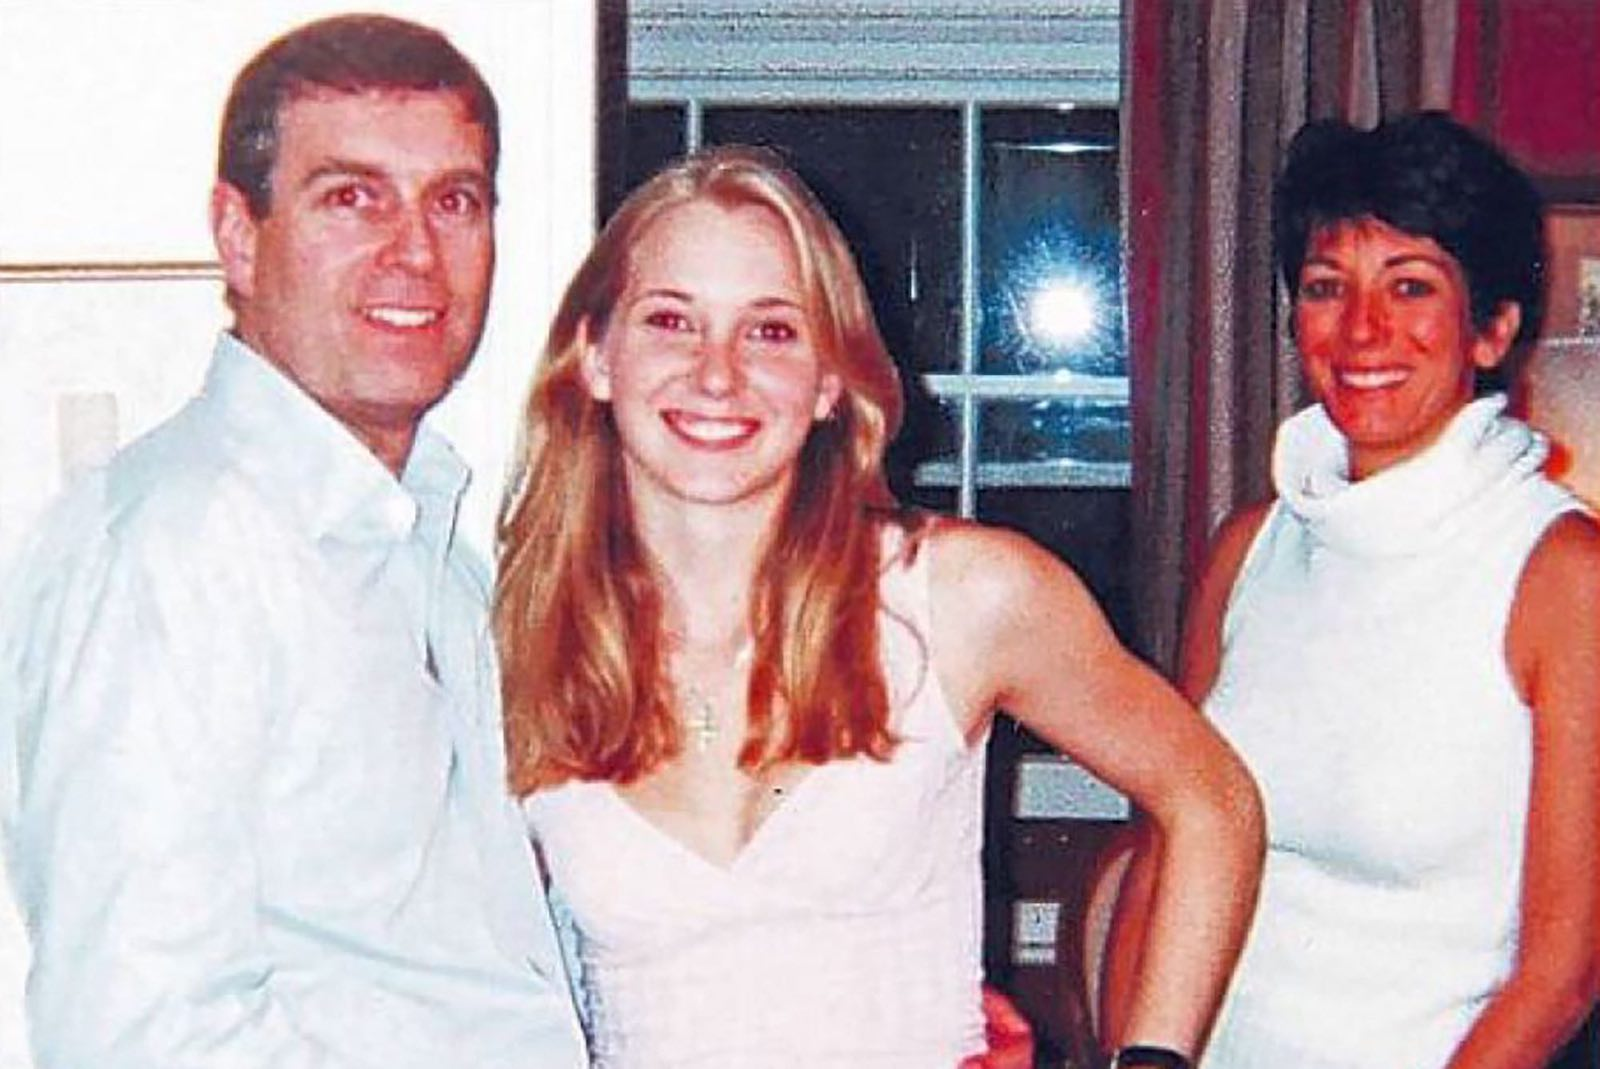 As the investigation into Jeffrey Epstein's friends continues, will Prince Andrew, Duke of York, be stripped of his royal title because of Epstein?